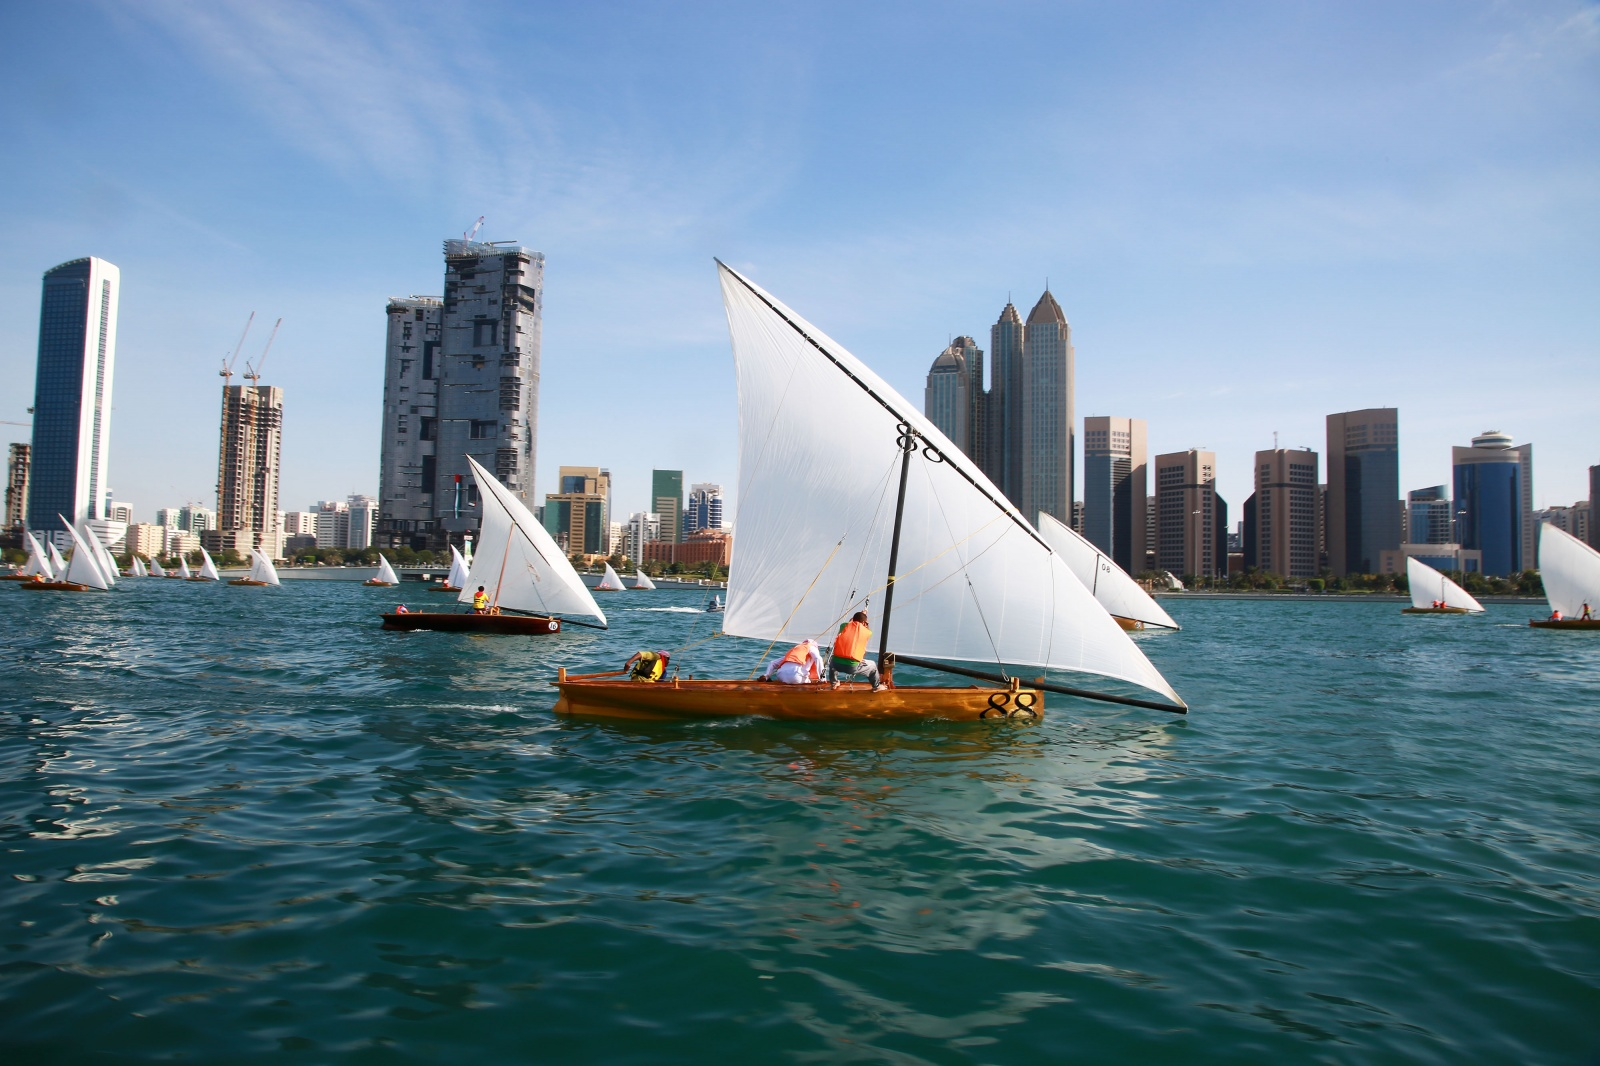 Yas Dhow Sailing Race 22FT